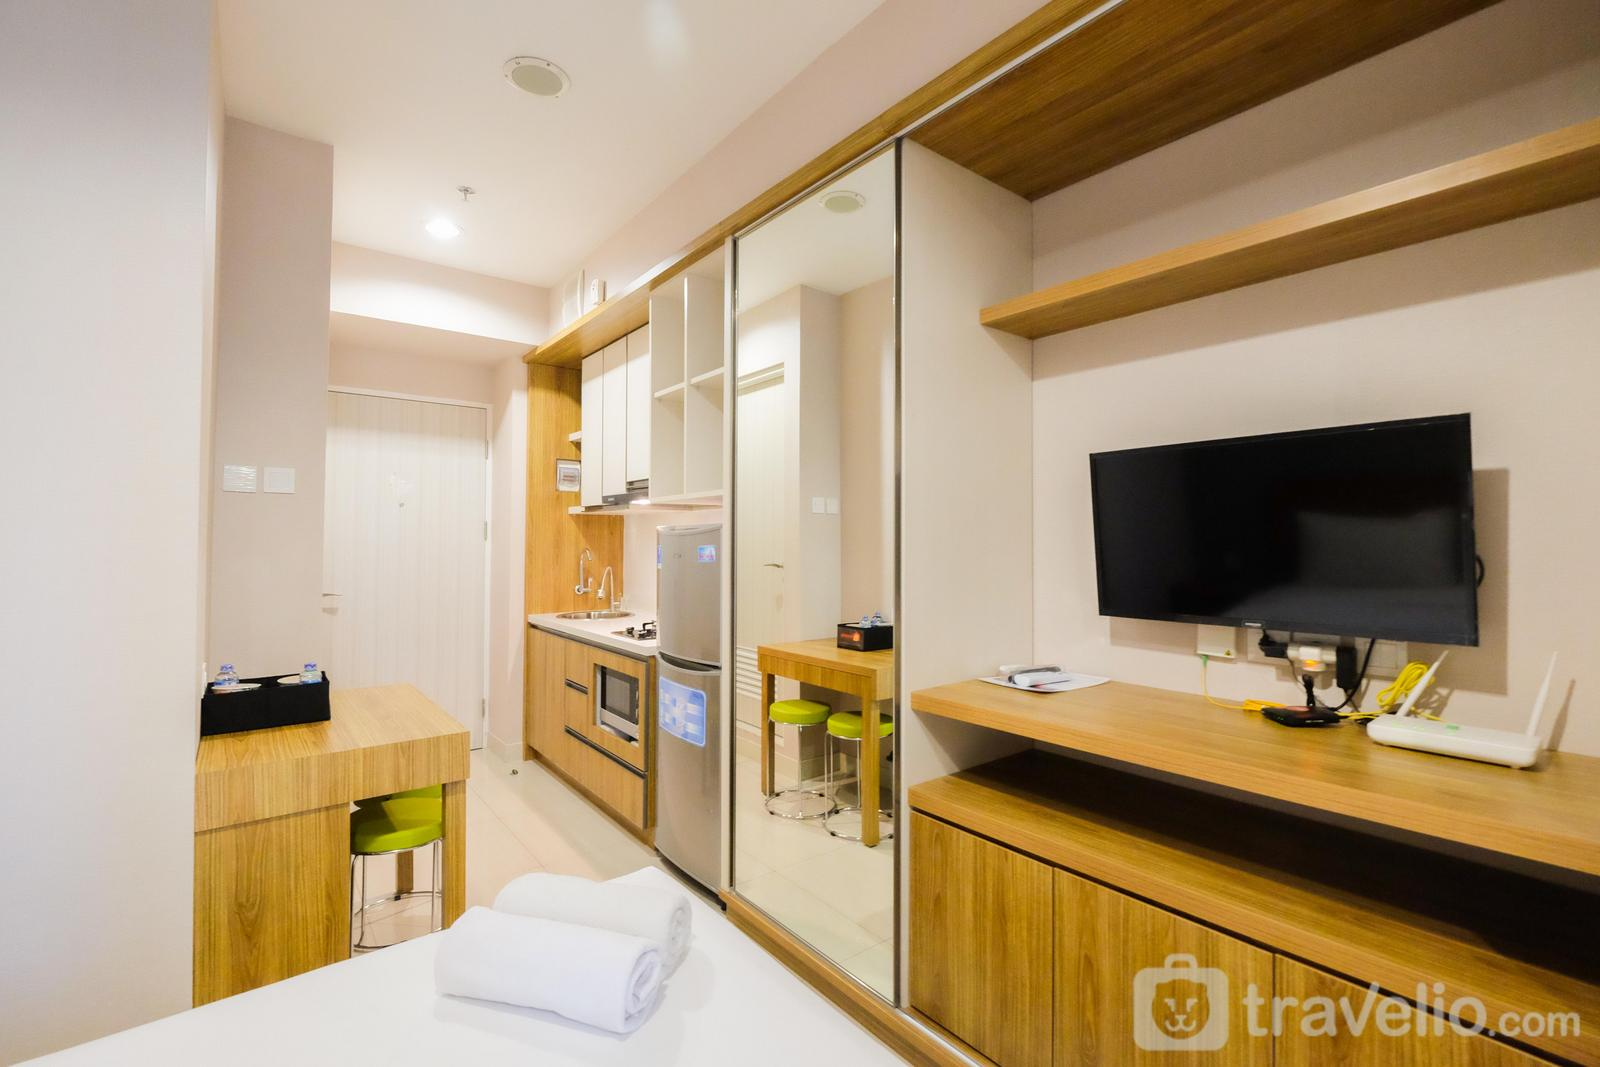 Grand Kamala Lagoon - Best Furnished Studio @ Grand Kamala Lagoon Apartment By Travelio